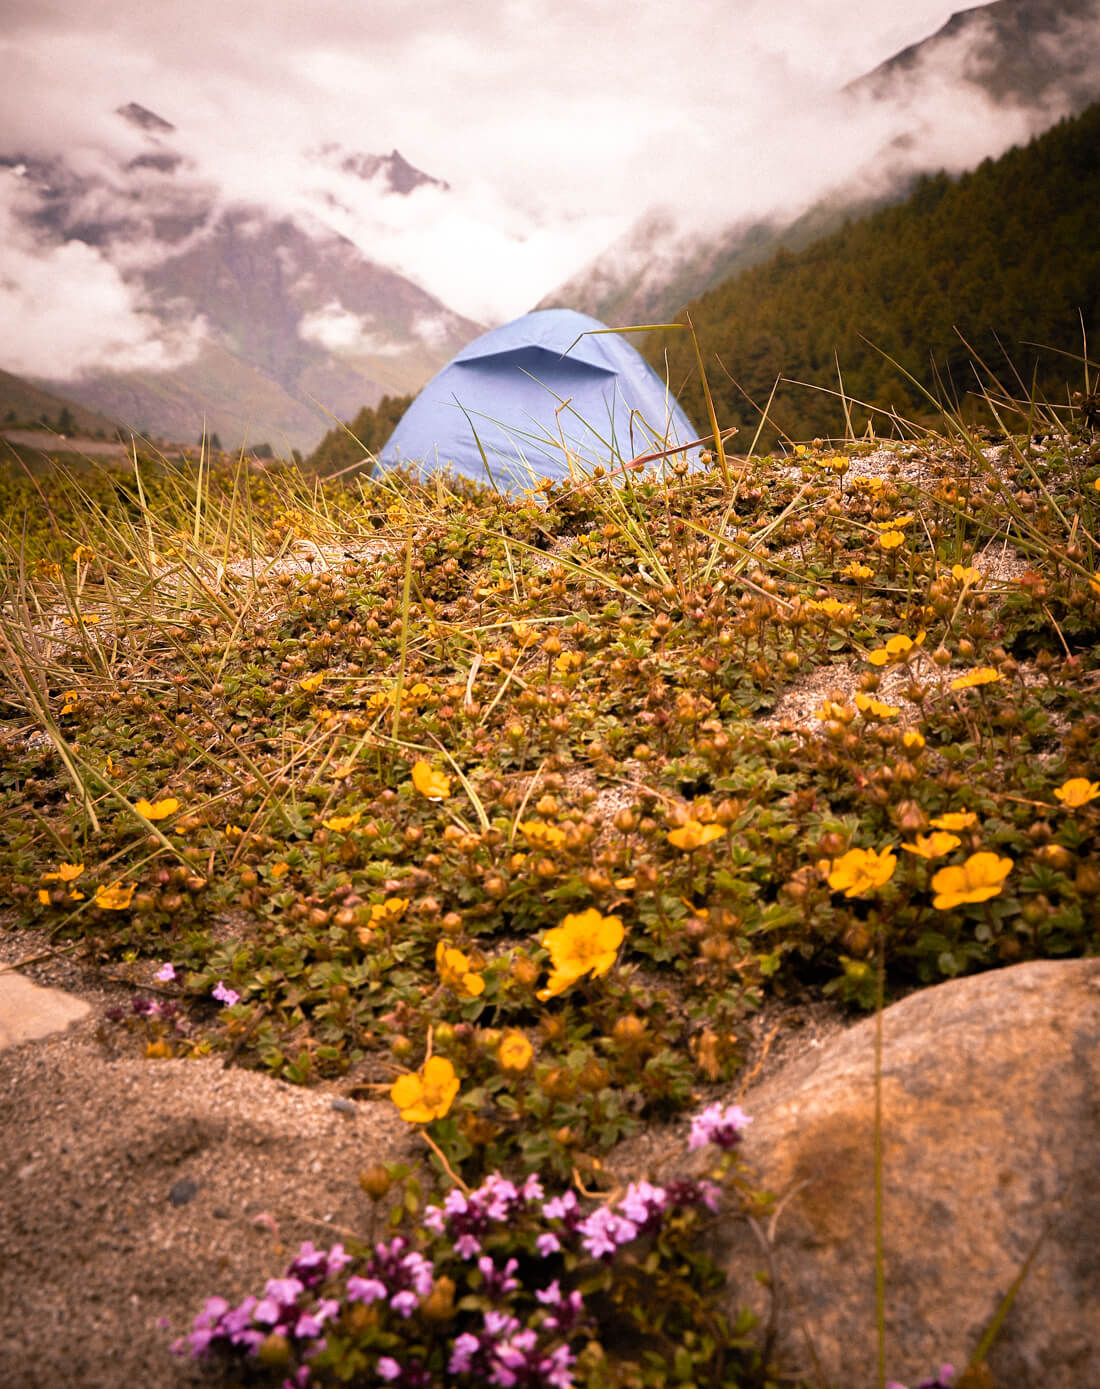 Blue tent set up in the mountains surrounded by wild flowers